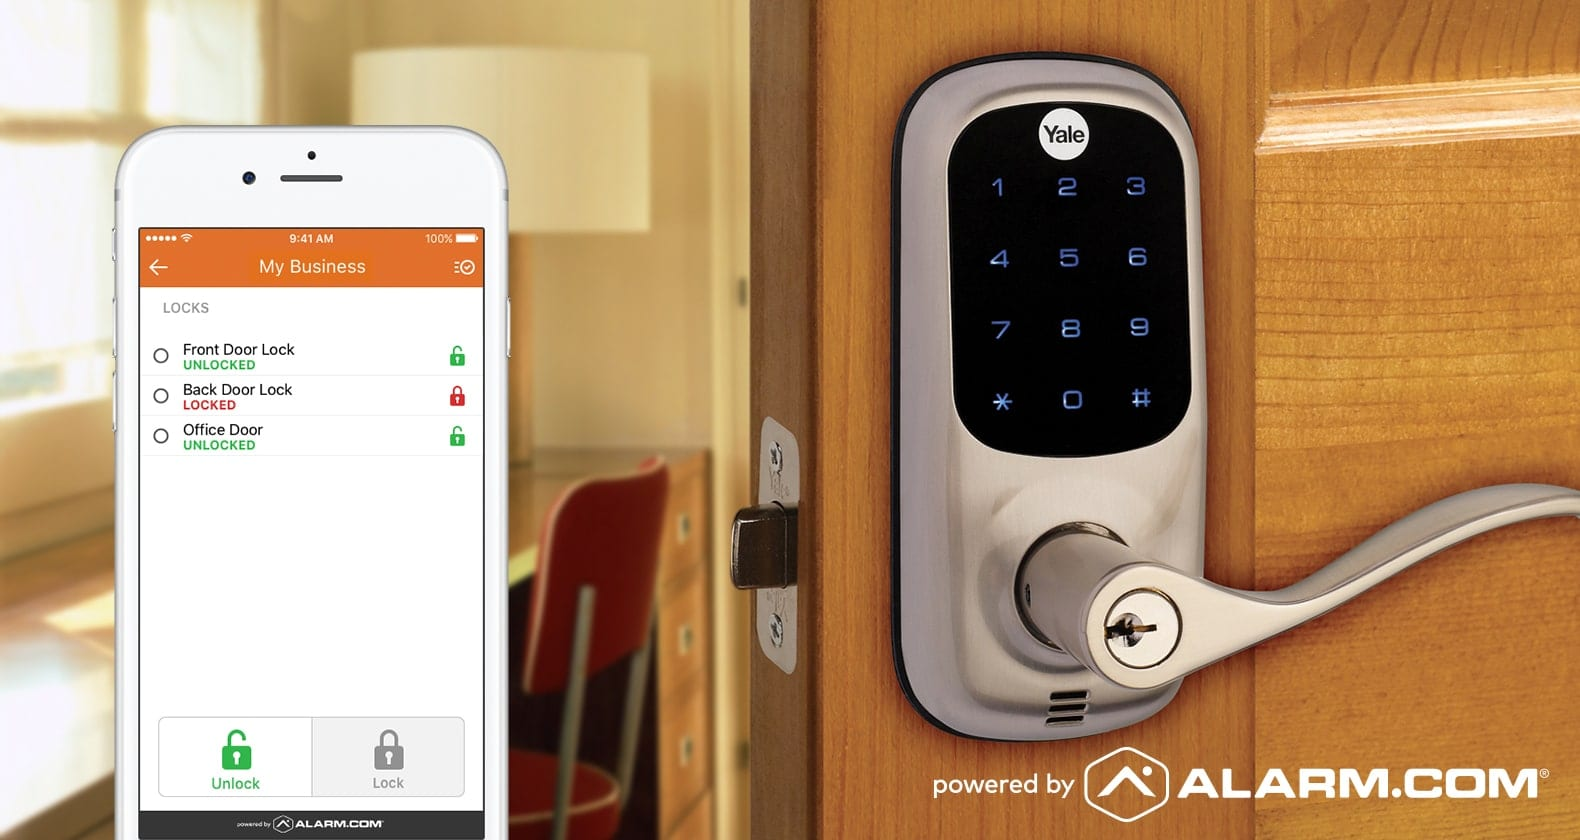 Access control for business insights